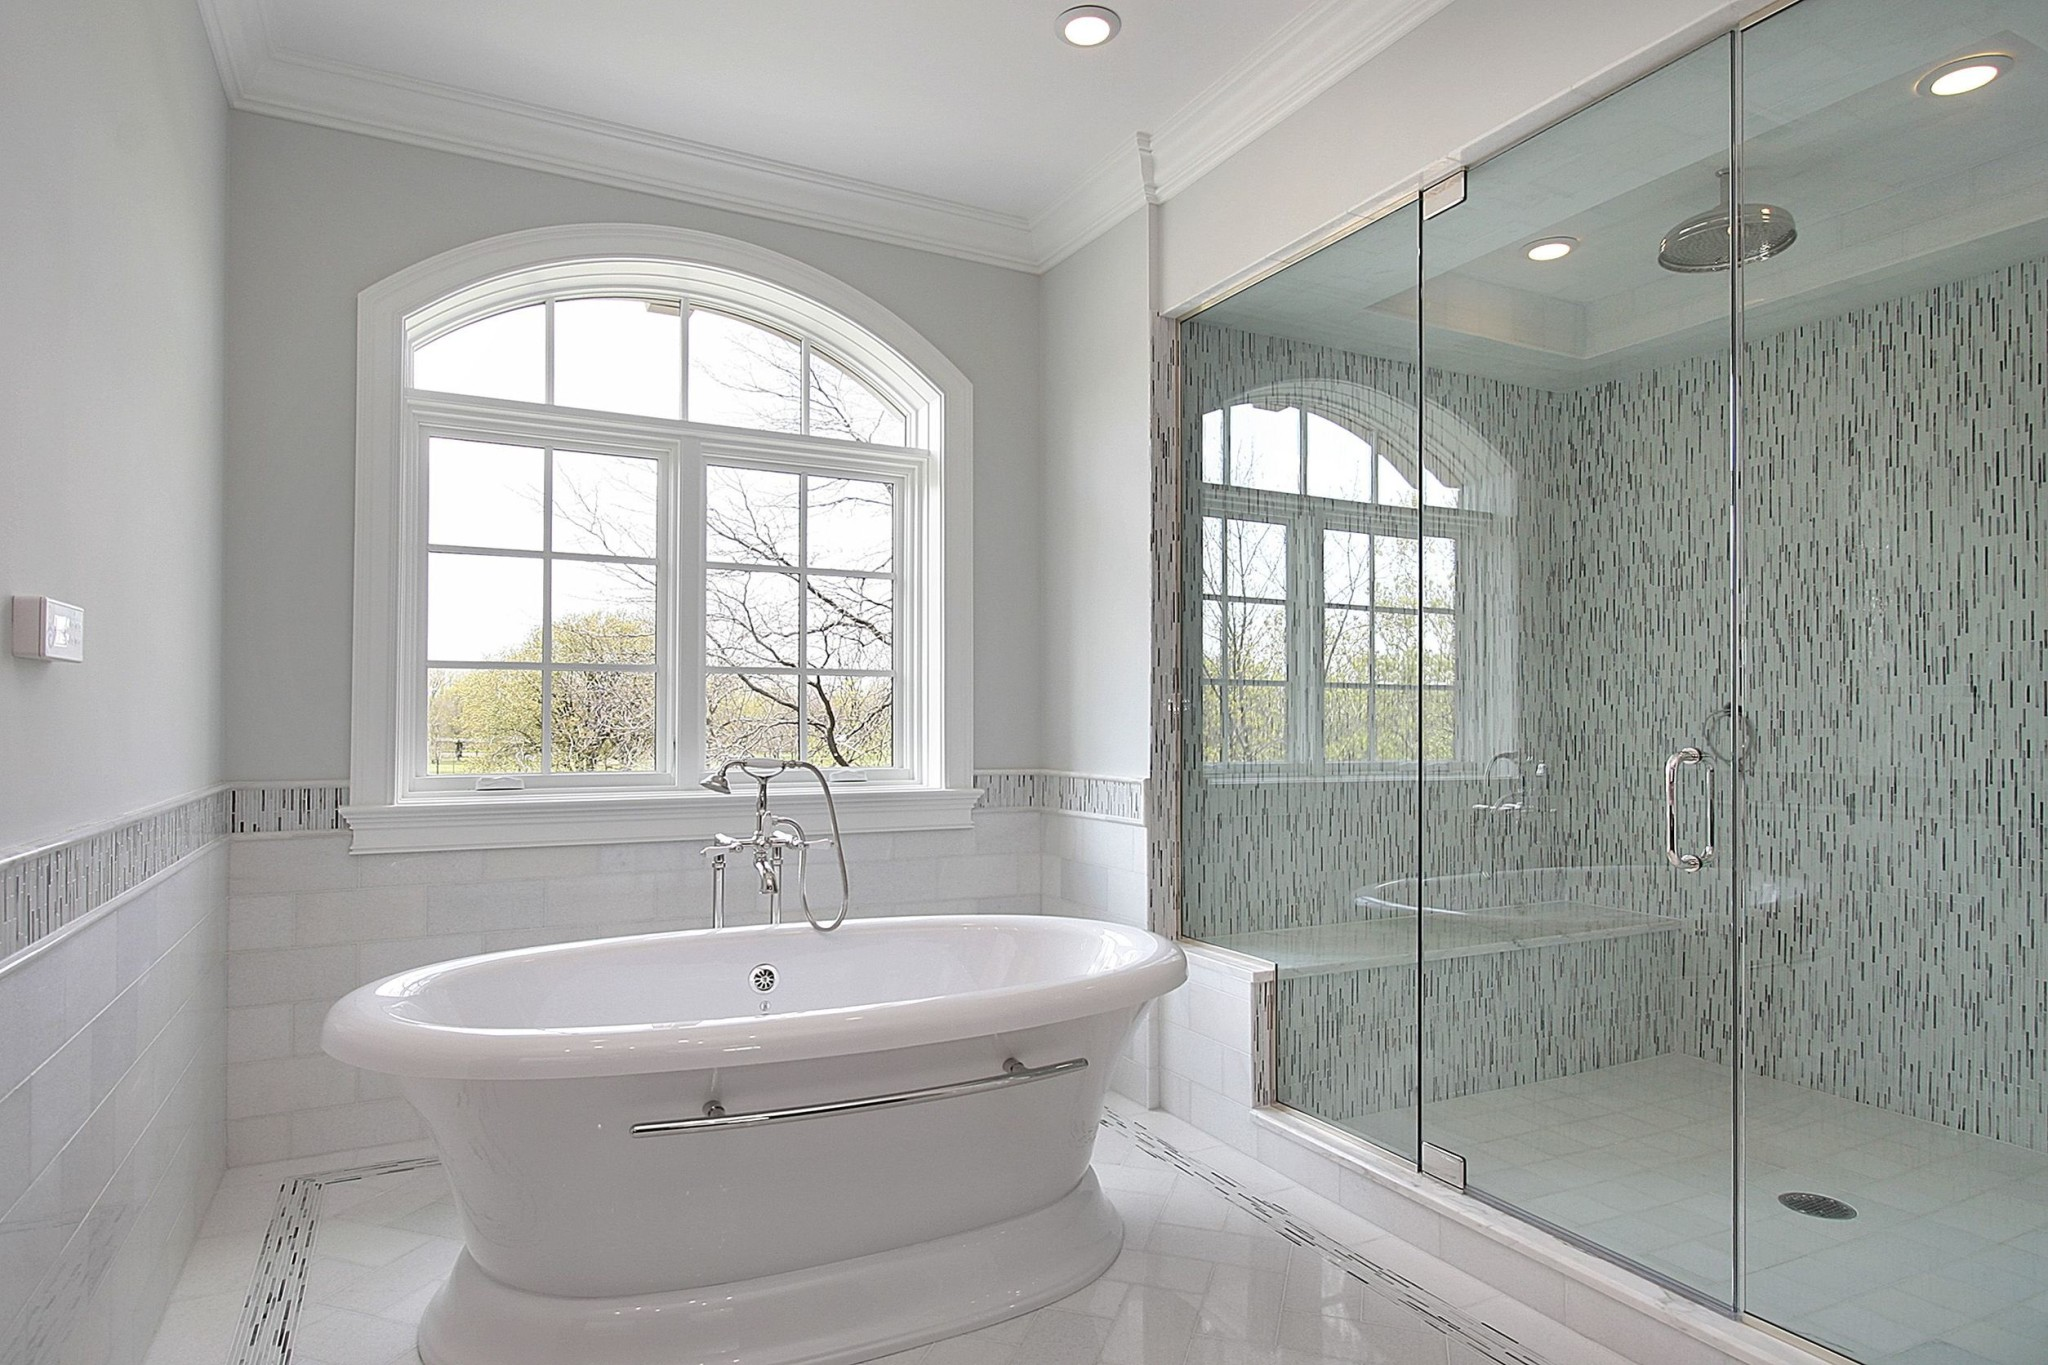 gallery remodels complete peace remodeling remodel us bathroom project contact today